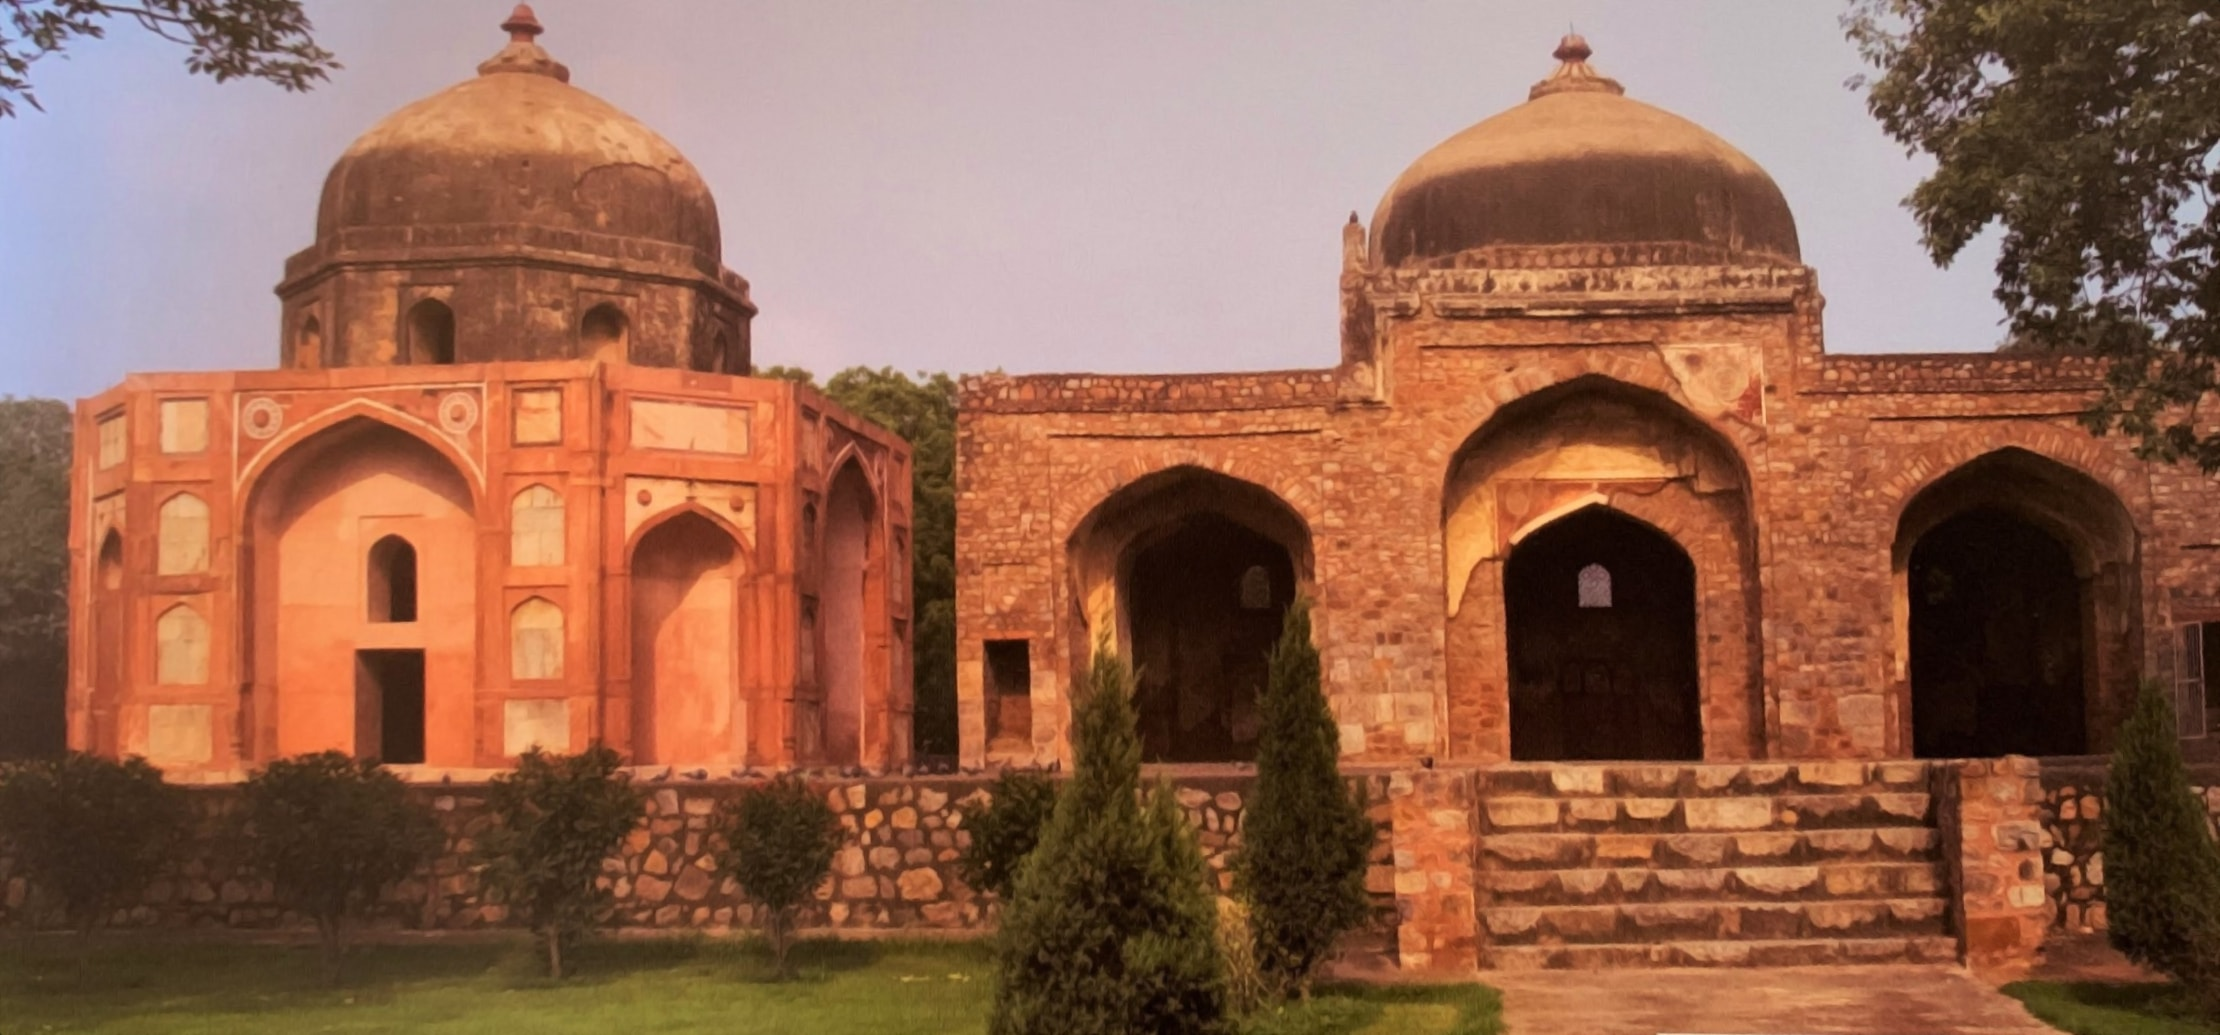 Afsarwala's Mosque & Tomb (PC - Great Monuments of India)